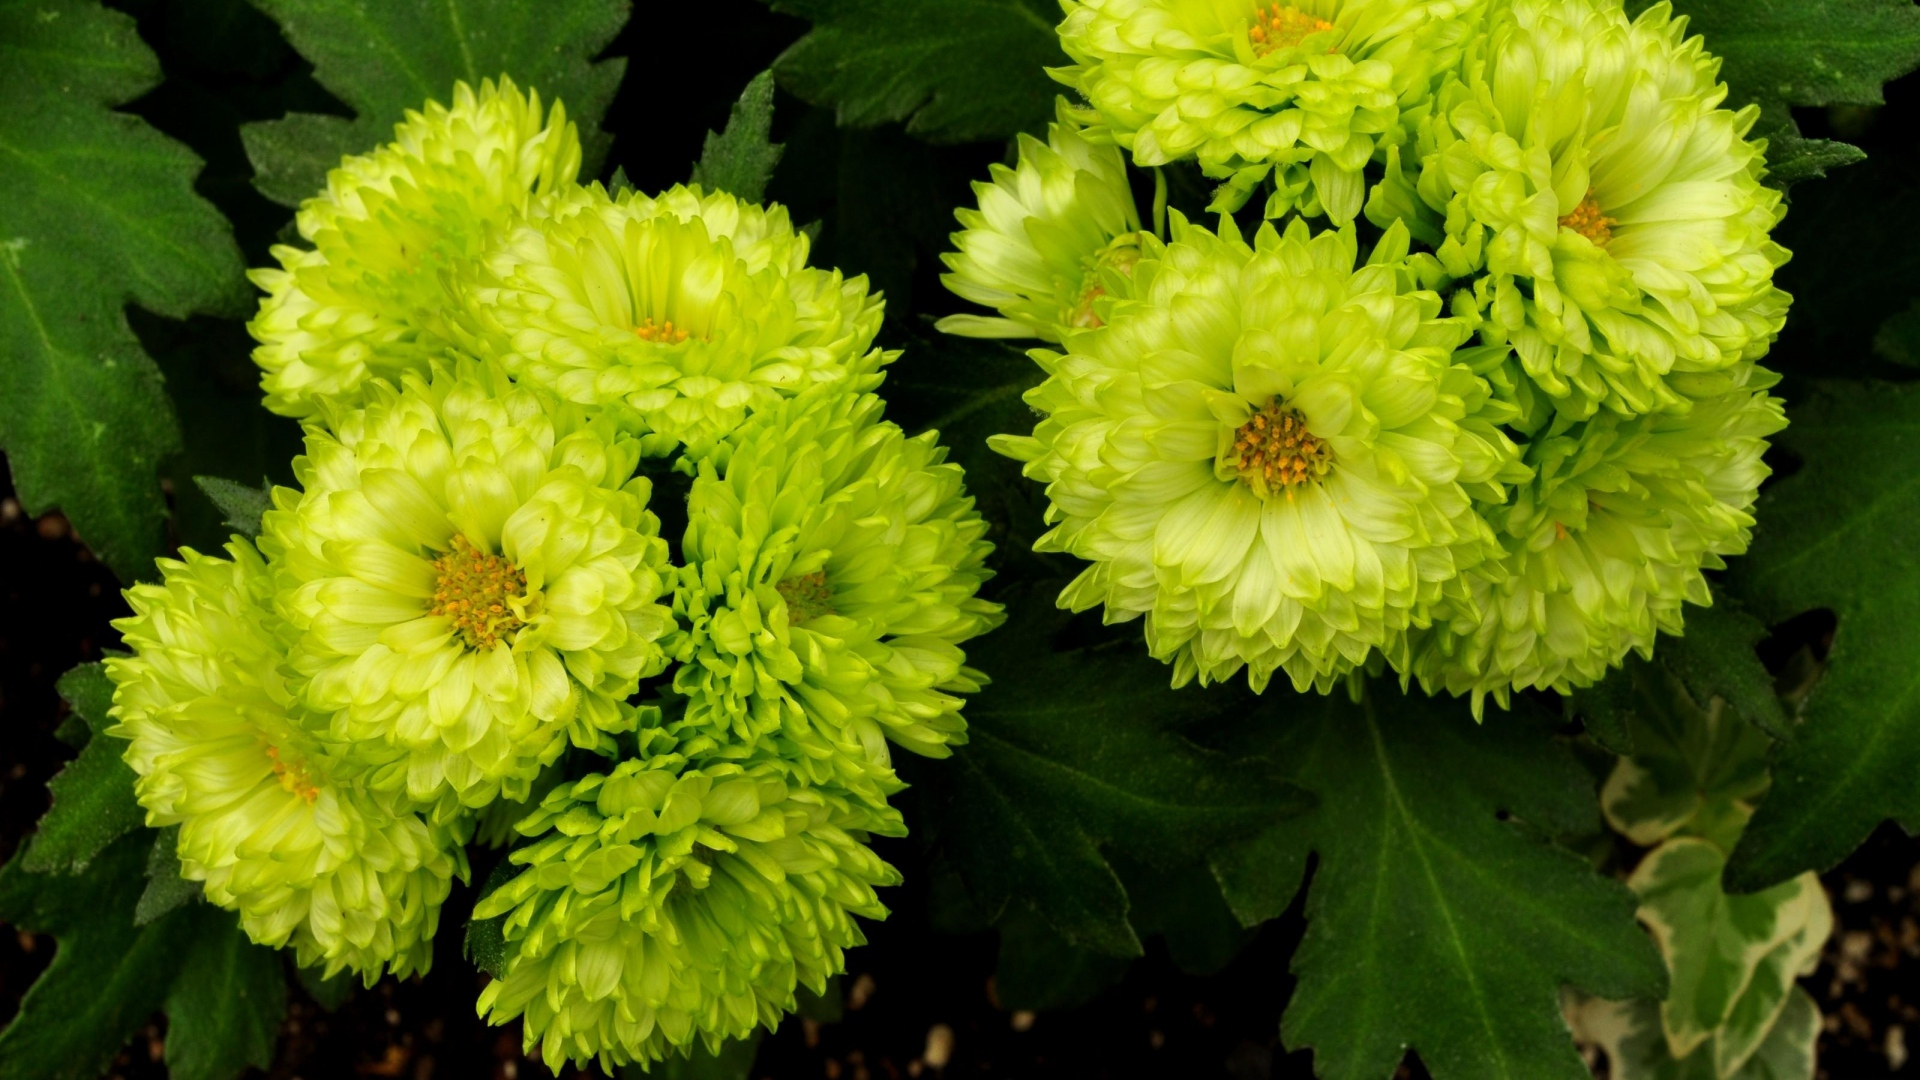 Get The Latest Asters Light Green Flower News Pictures And Videos Learn All About From Wallpapers4uorg Your Wallpaper